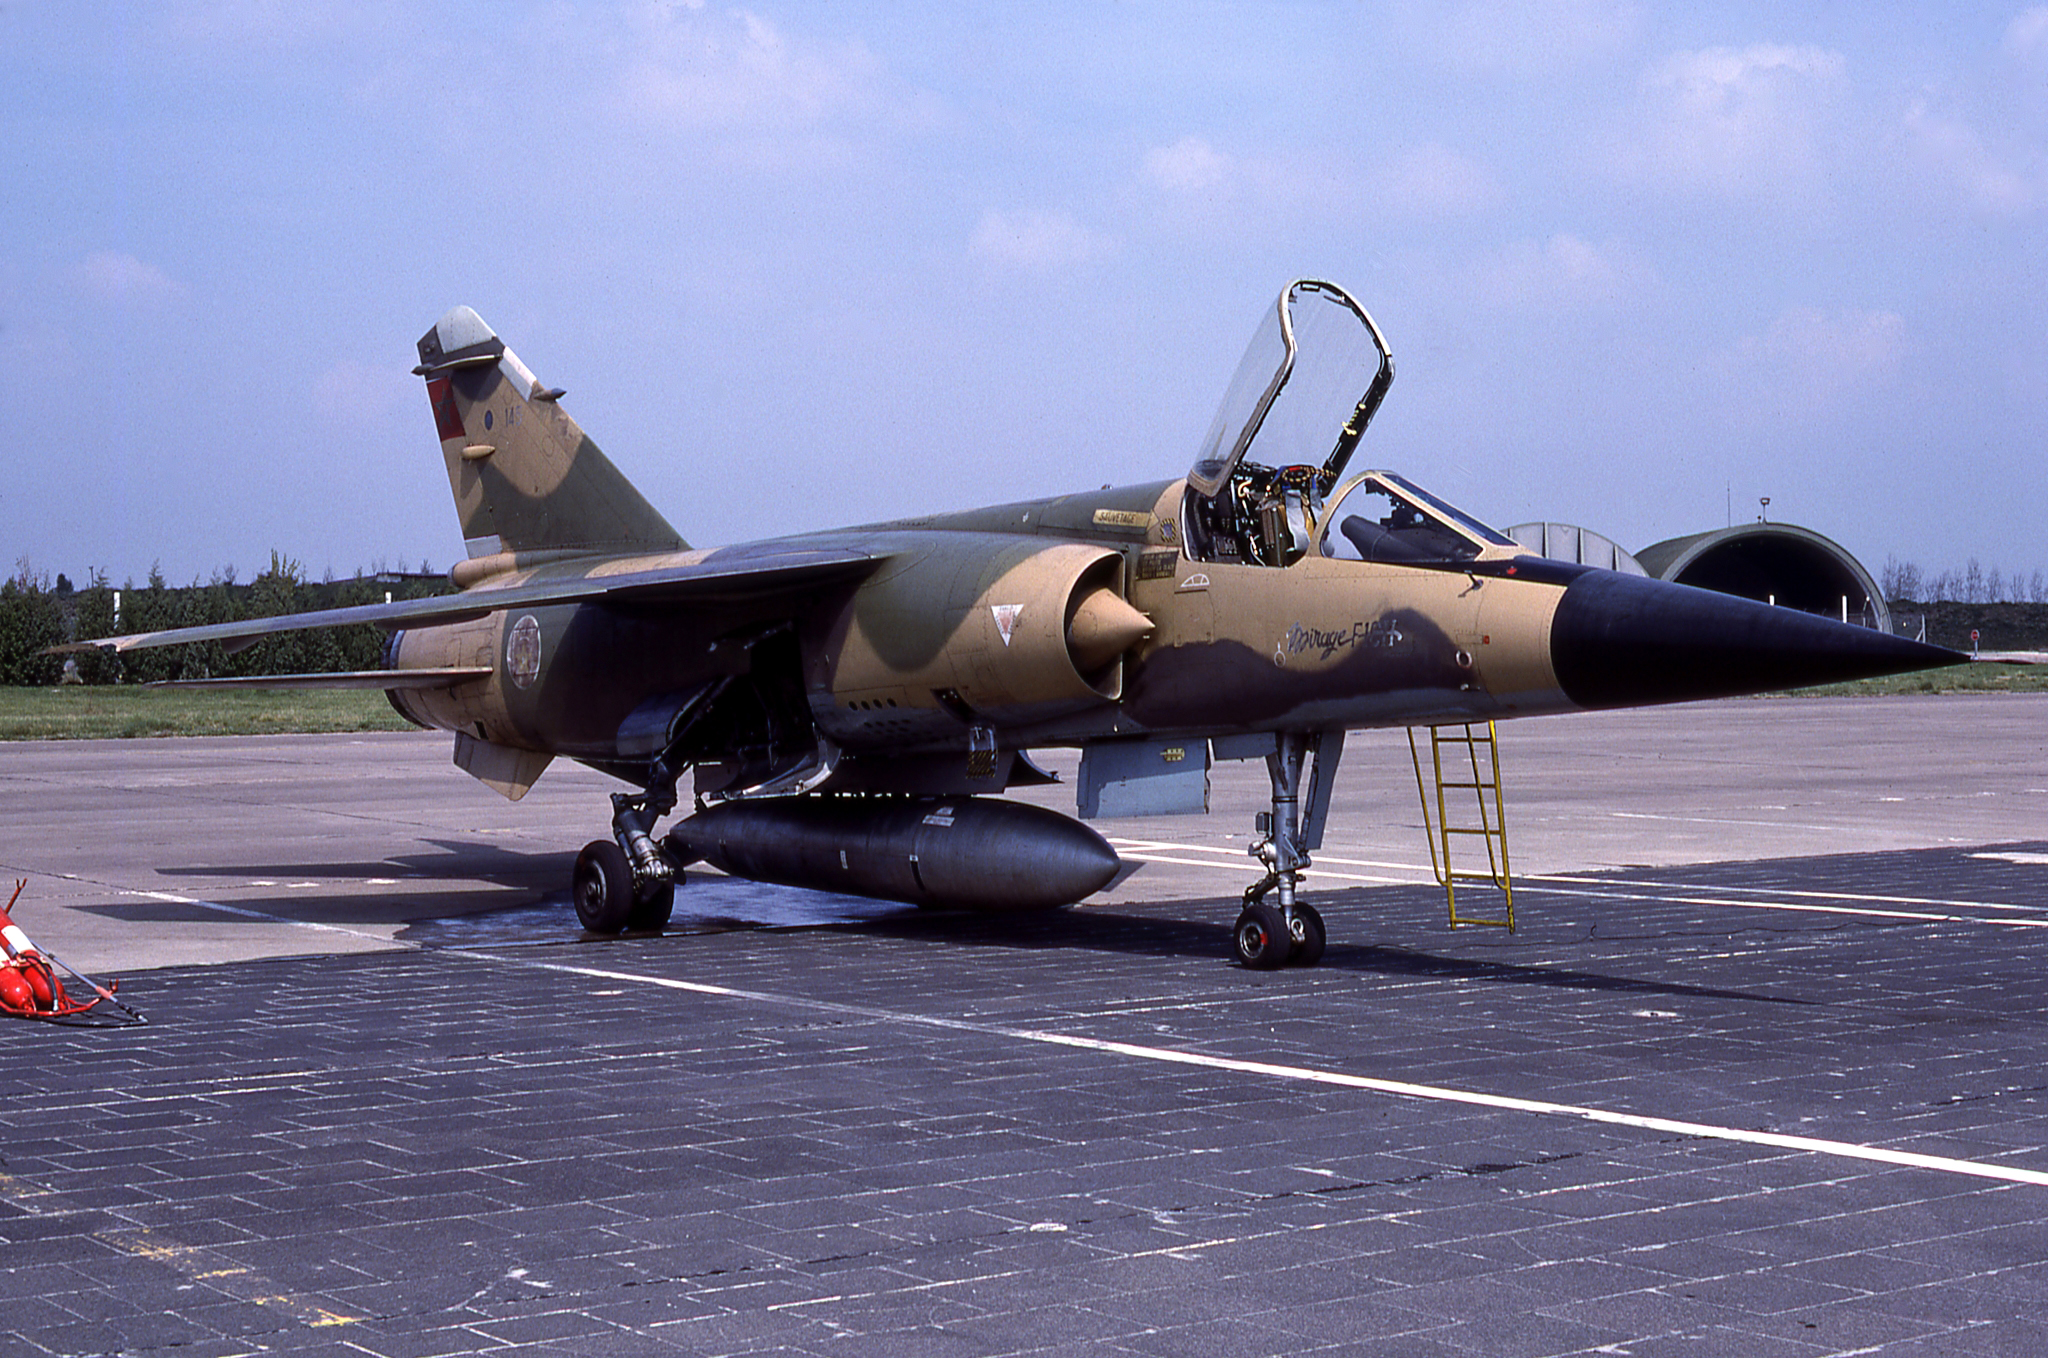 FRA: Photos Mirage F1 - Page 15 46152478631_20f0a98687_o